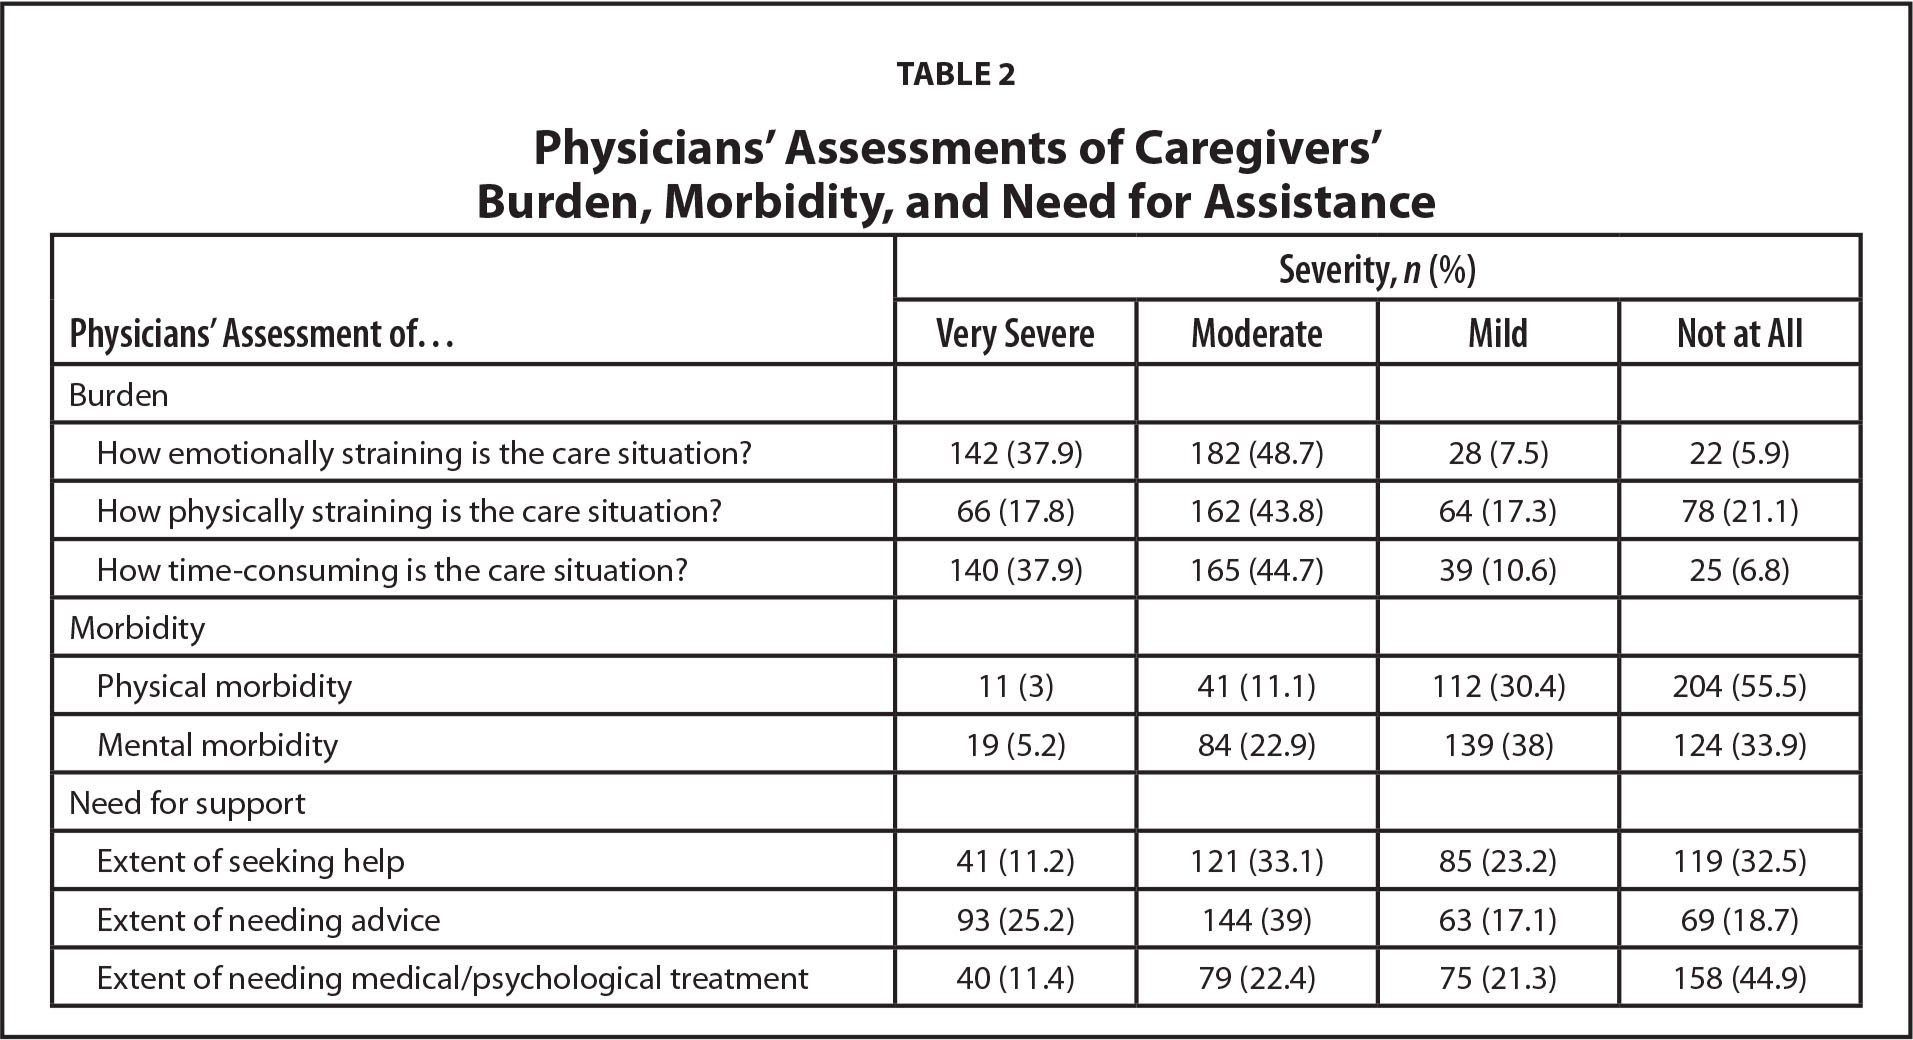 Physicians' Assessments of Caregivers' Burden, Morbidity, and Need for Assistance